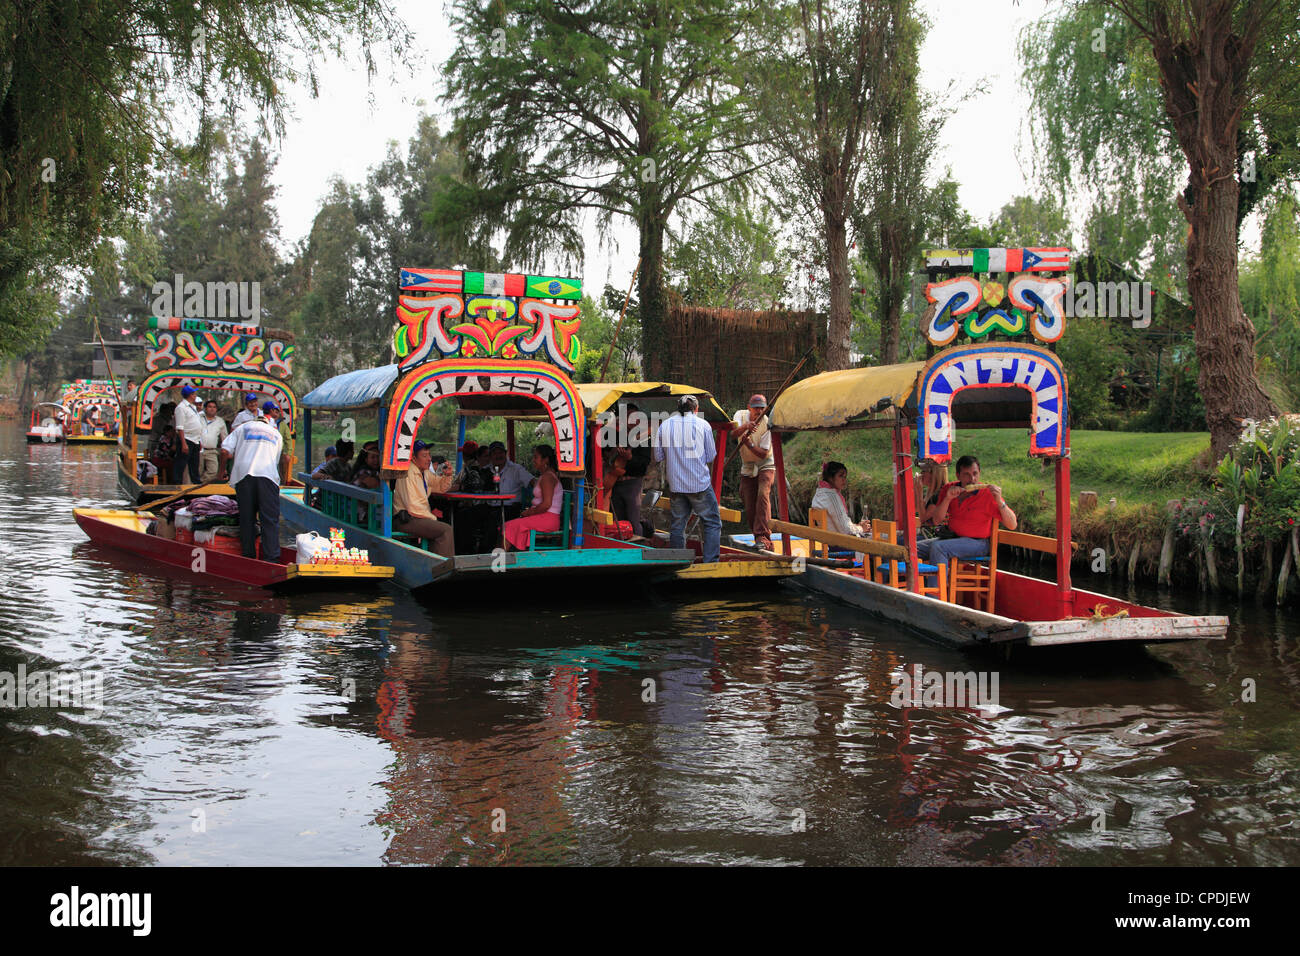 Brightly painted boats, Xochimilco, Trajinera, Floating Gardens, Canals, Mexico City, Mexico, North America - Stock Image